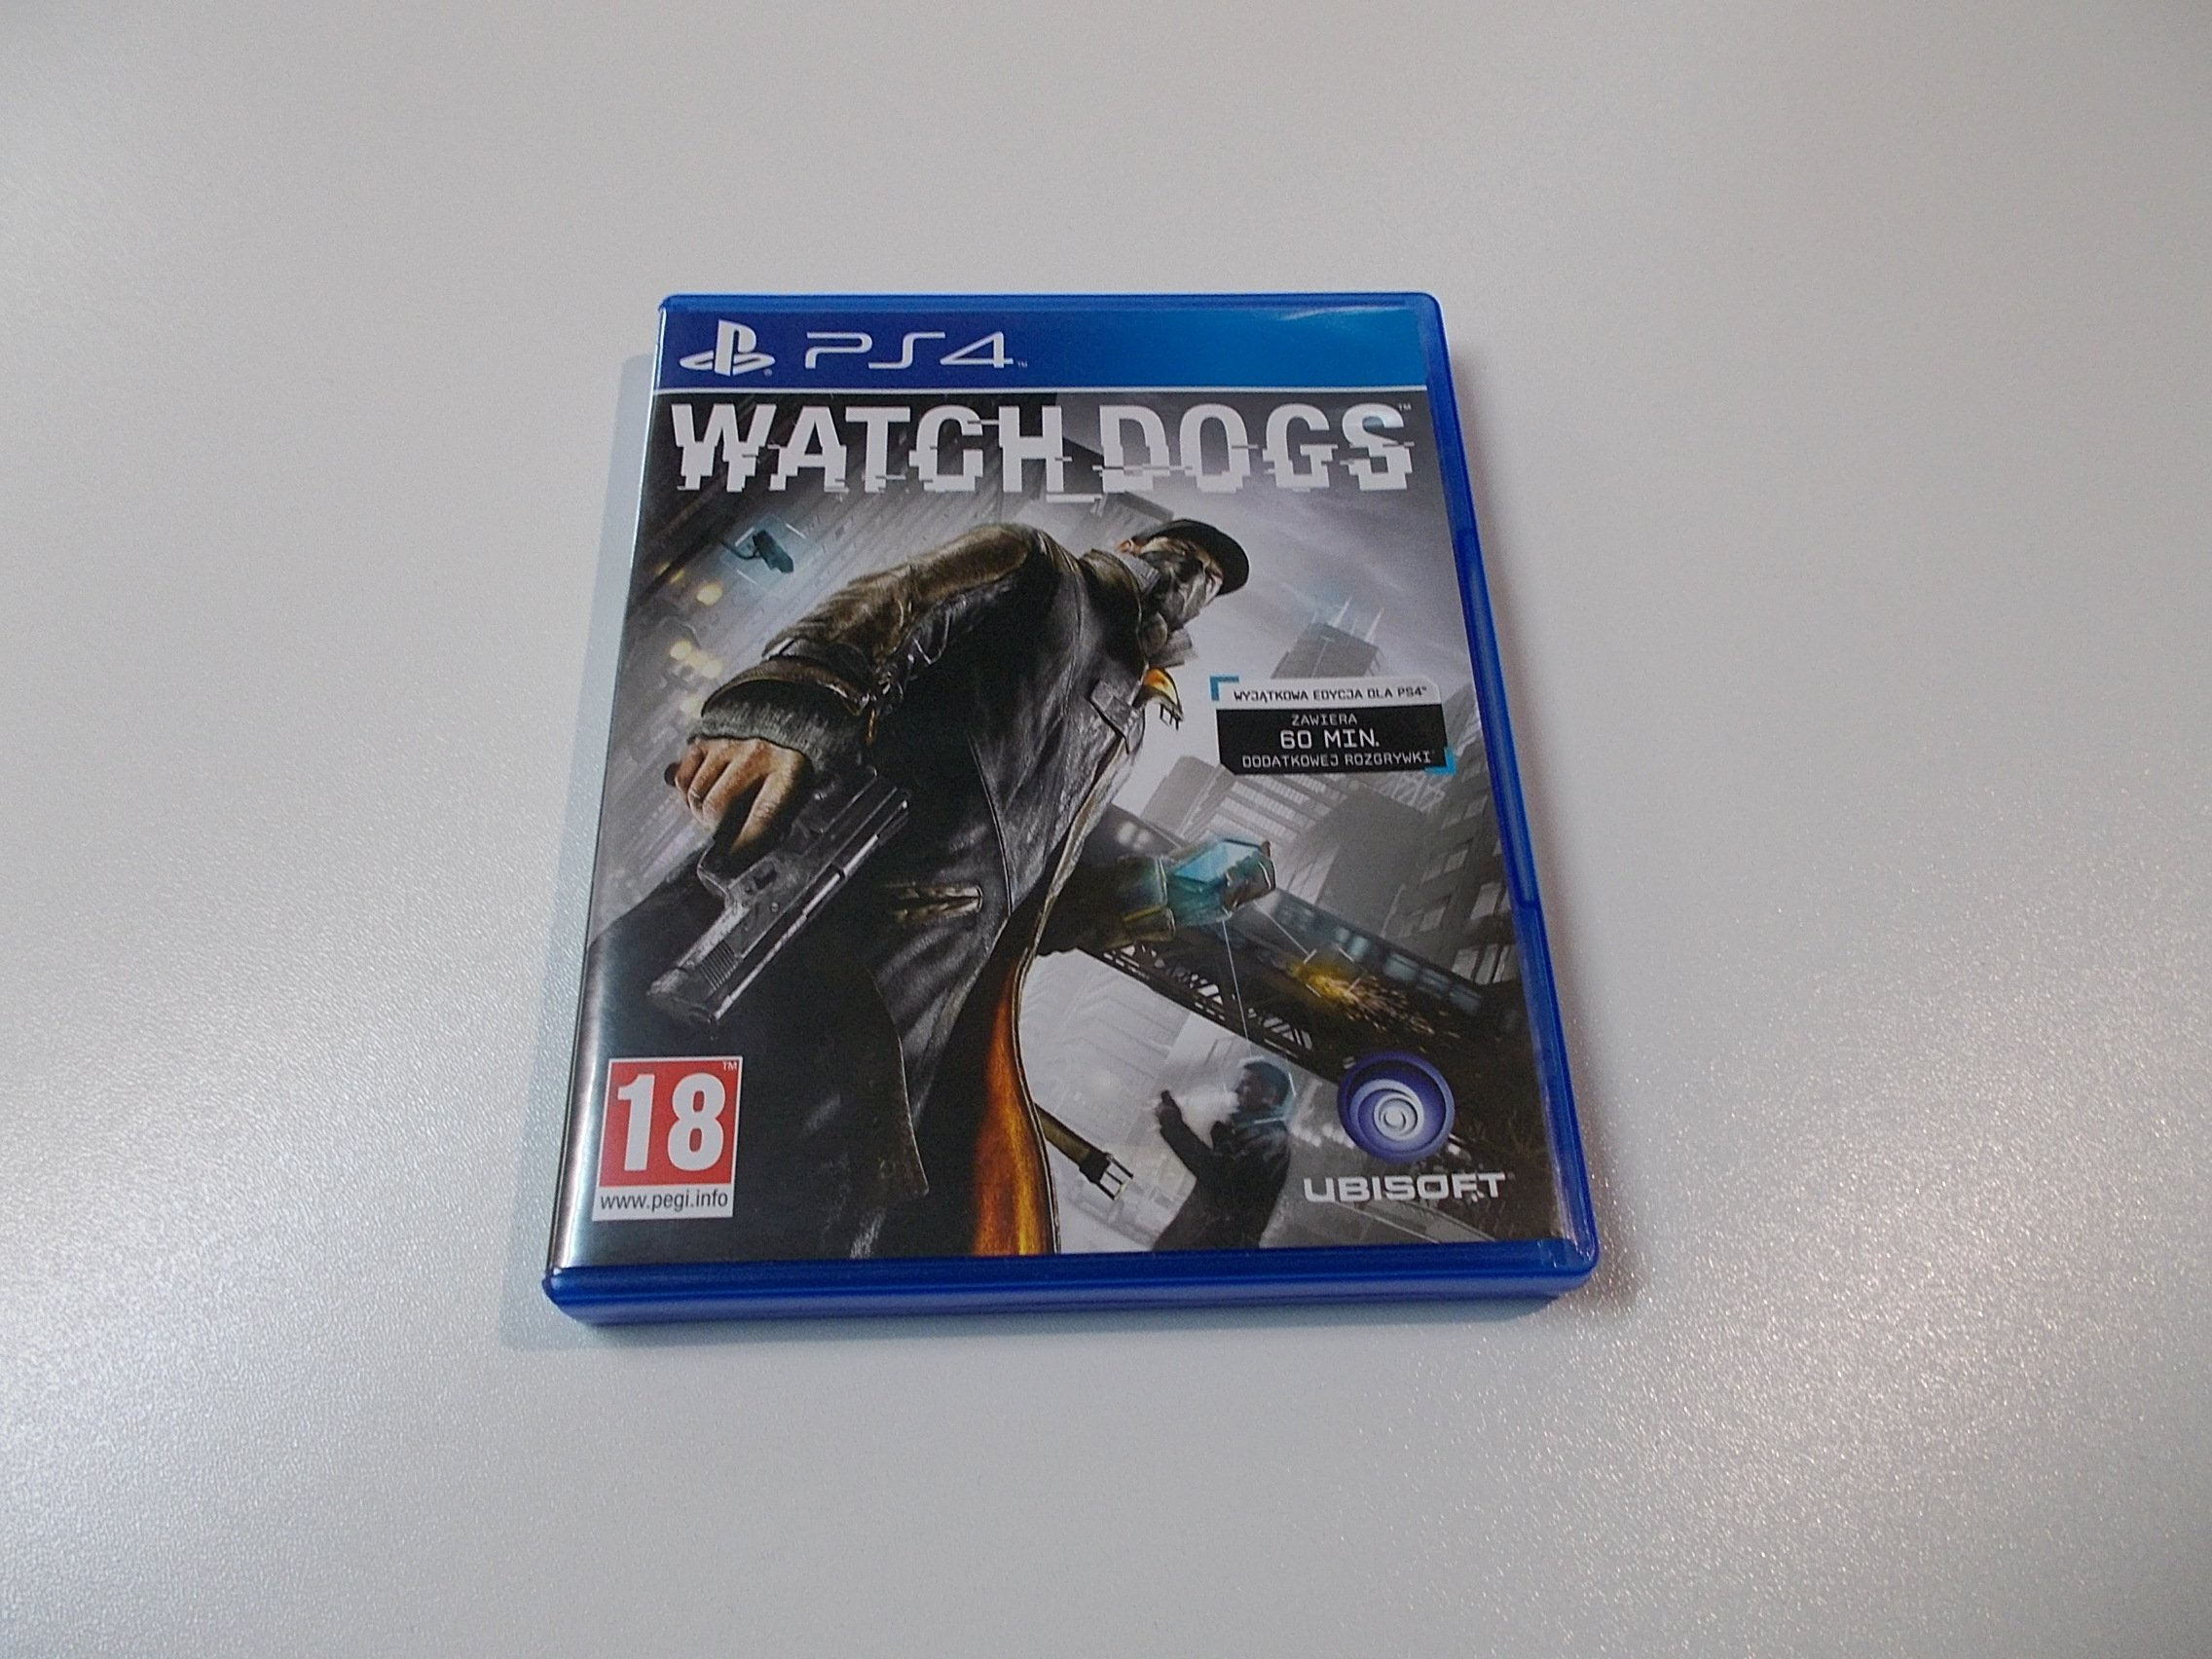 Watch Dogs - GRA Ps4 - Sklep ALFA Opole 0371